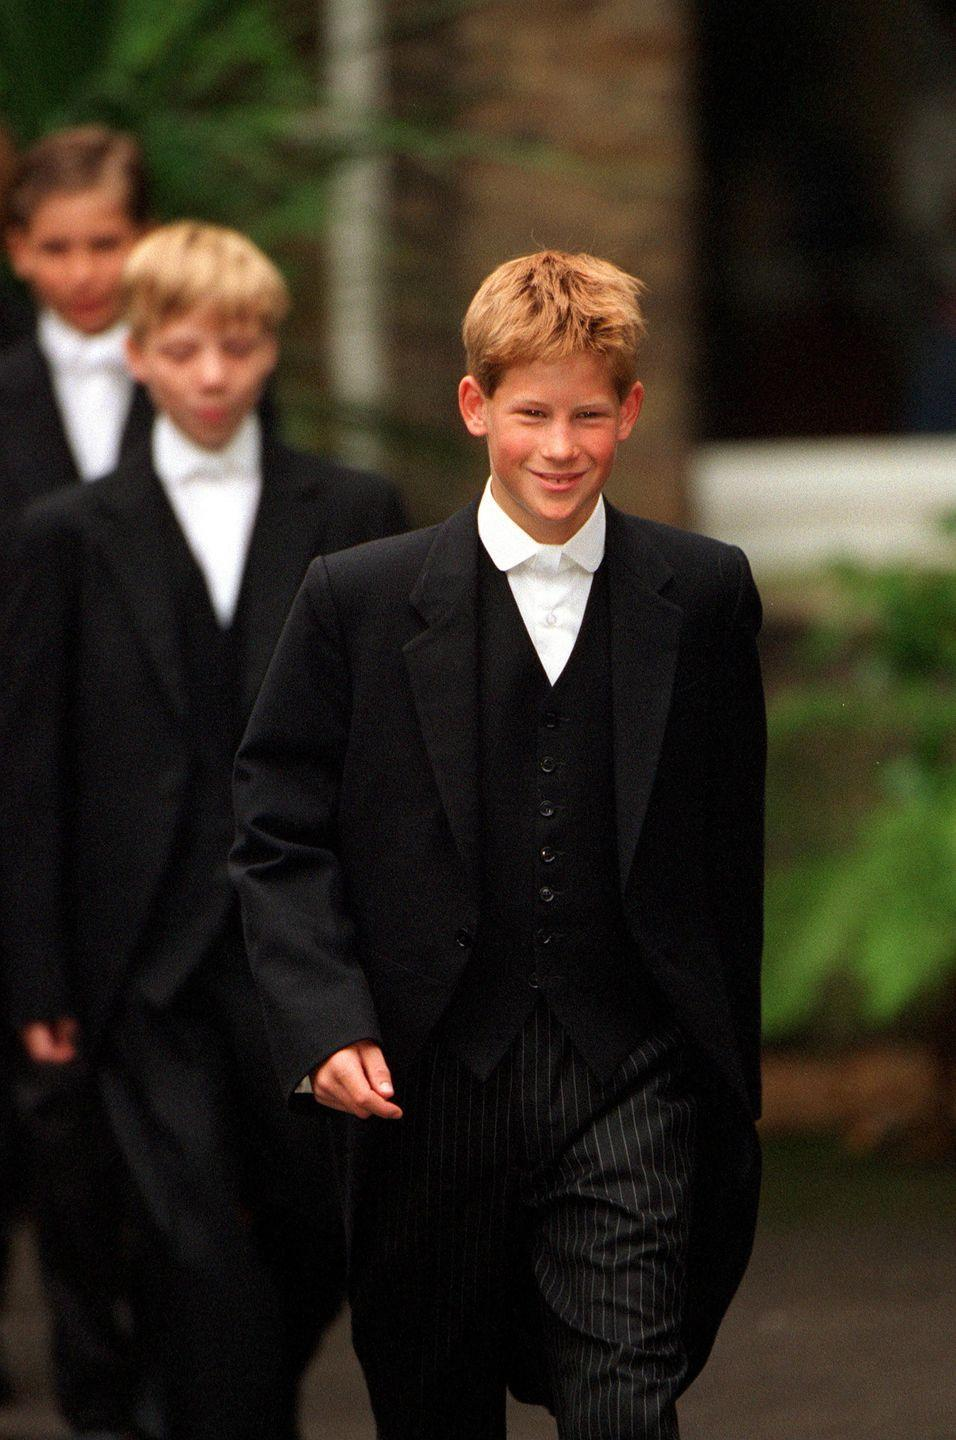 <p>Just a couple of years after his brother William, on September 2, 1998, Prince Harry joined the ranks at Eton College. Dressed in the same famous uniform, Harry smiled happily in the pictures, despite losing his mother just a year before.</p>